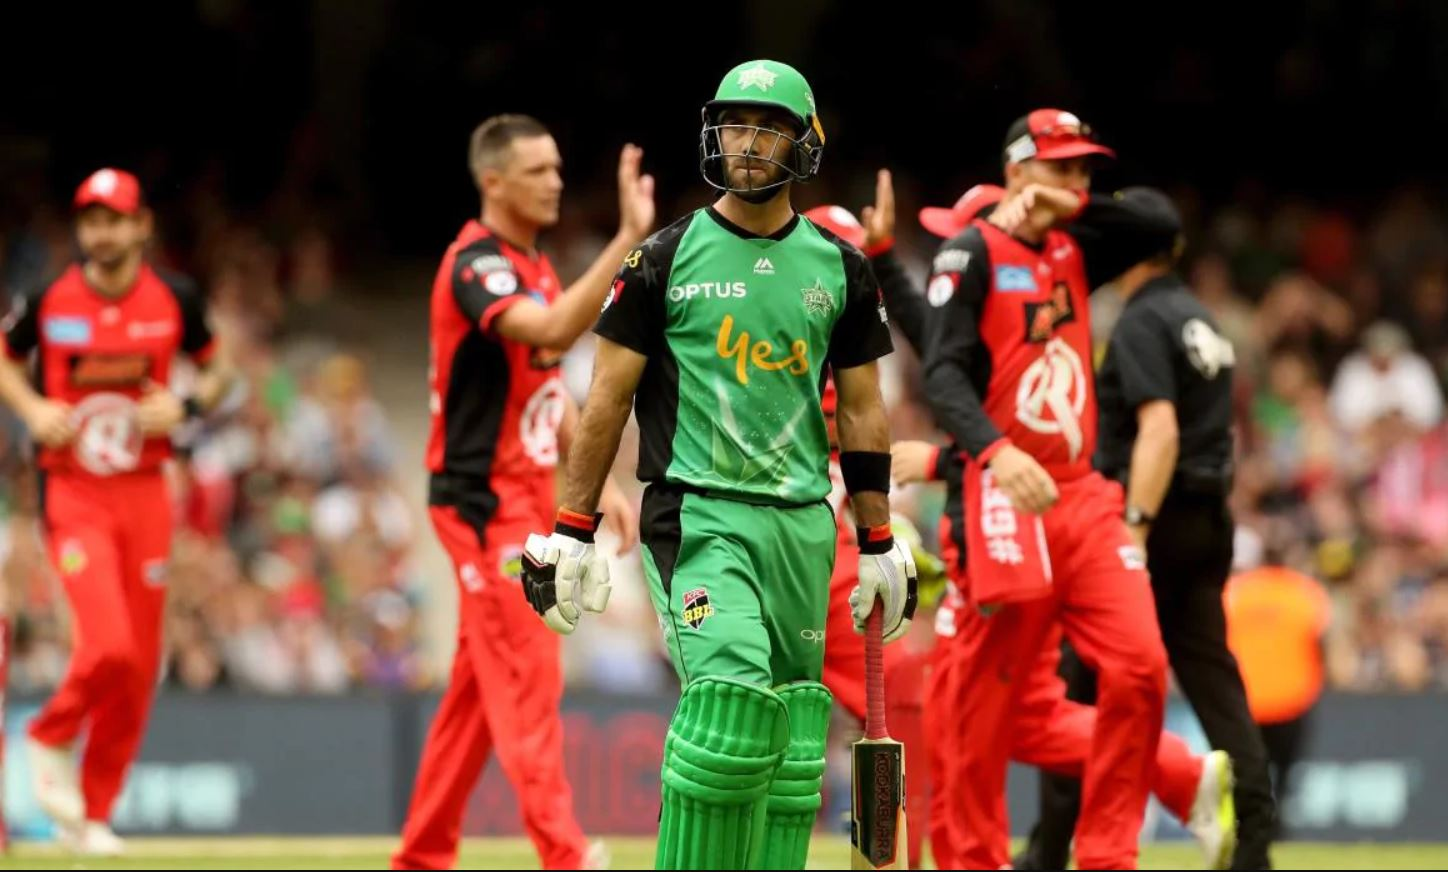 BBL09 Fantasy Tips: Stars vs Renegades